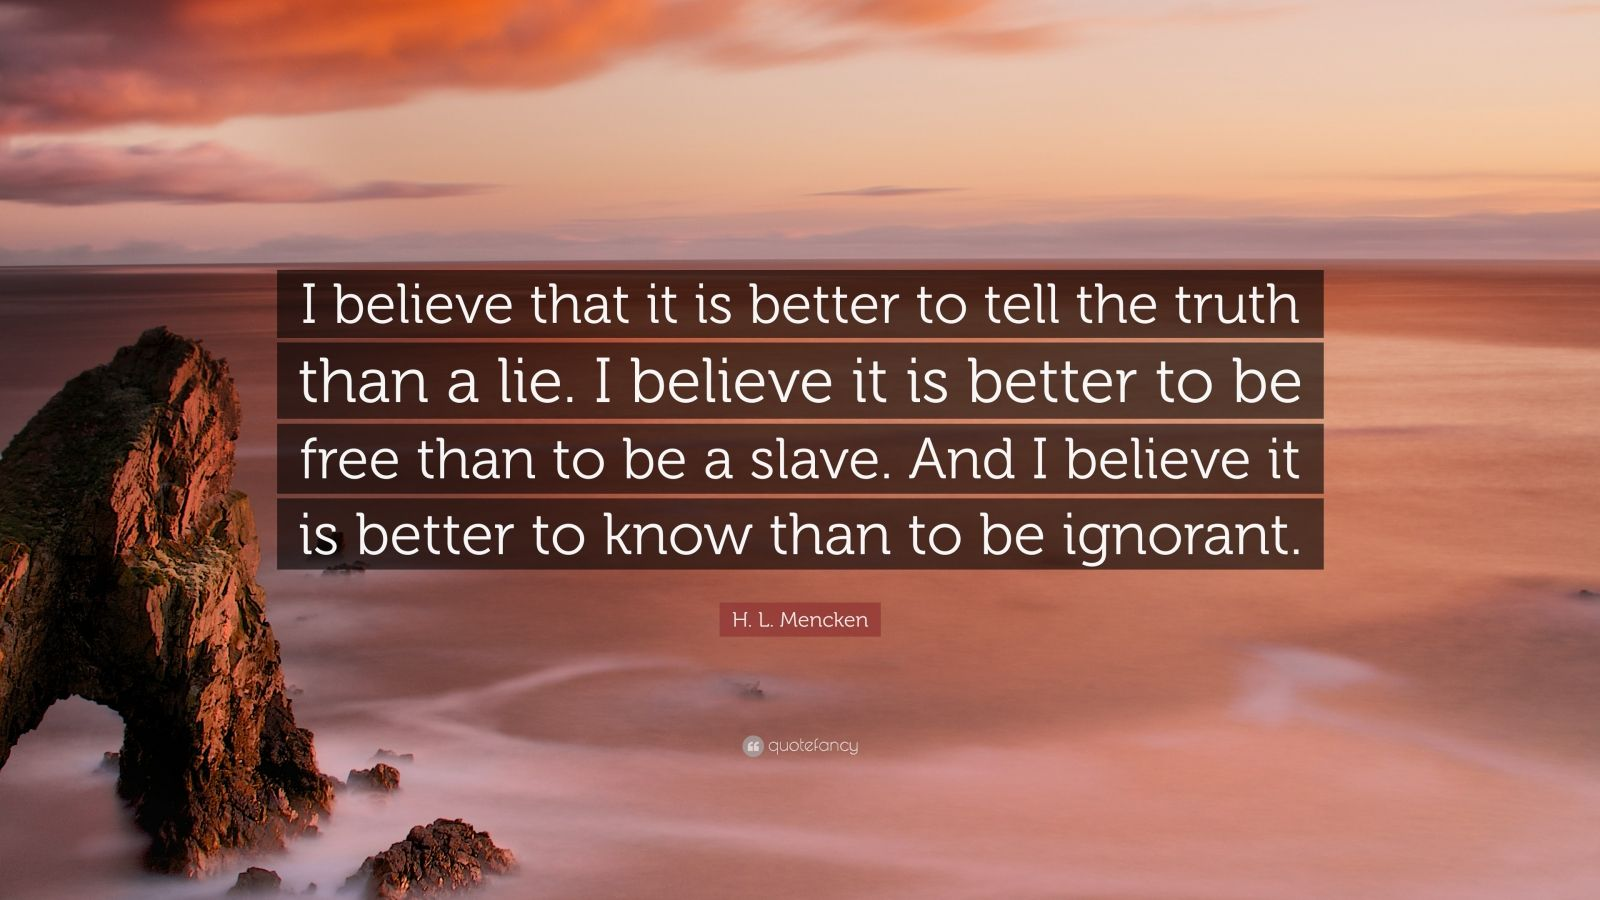 """H. L. Mencken Quote: """"I believe that it is better to tell the truth than a lie. I believe it is better to be free than to be a slave. And I believe it is better to know than to be ignorant."""""""